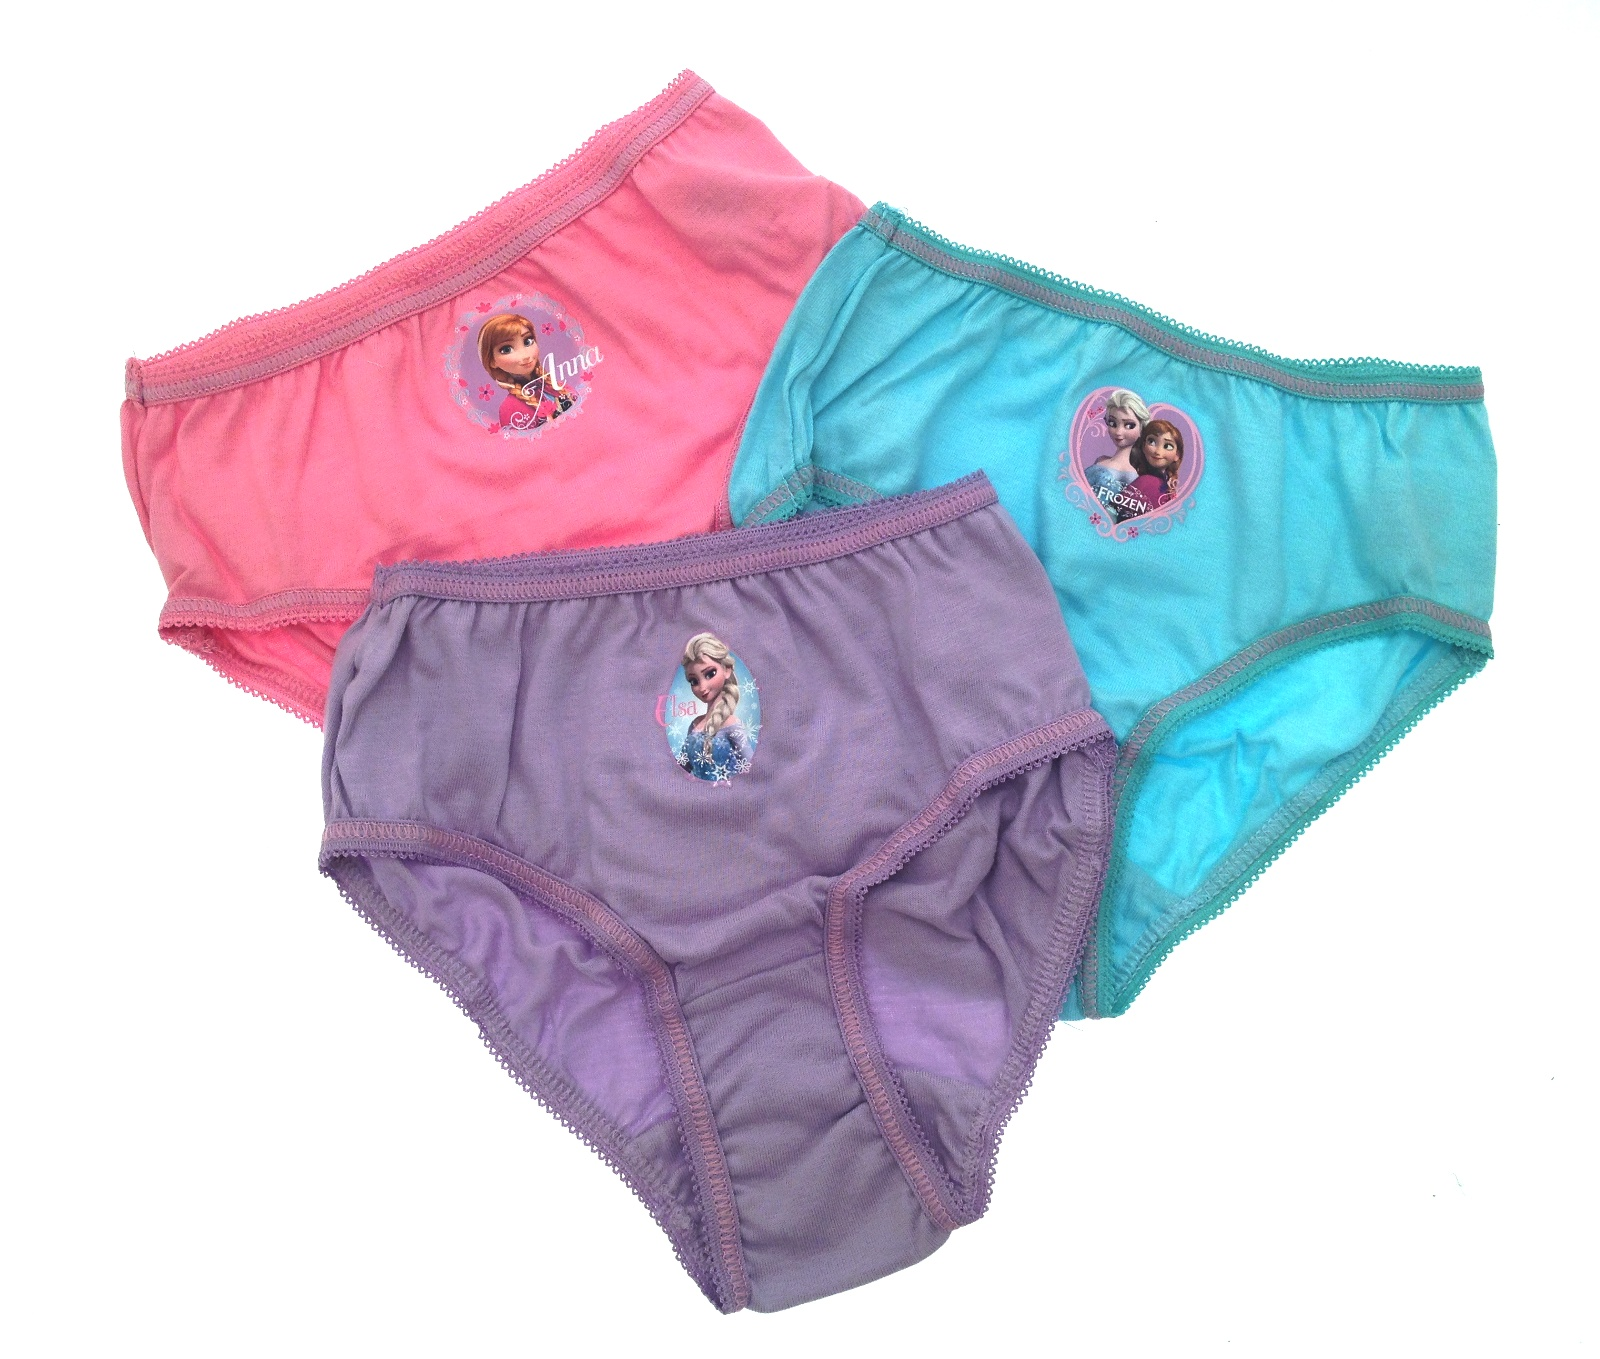 Alexanders Costumes Kids Knicker Pants, Black, Large. by Alexanders Costumes. $ $ 14 99 $ Prime. FREE Shipping on eligible orders. Only 1 left in stock - order soon. knickers were worn by both princes and Making Believe Boys Knickers (Choose Color and Size) by Making Believe. $ $ 14 99 Prime.